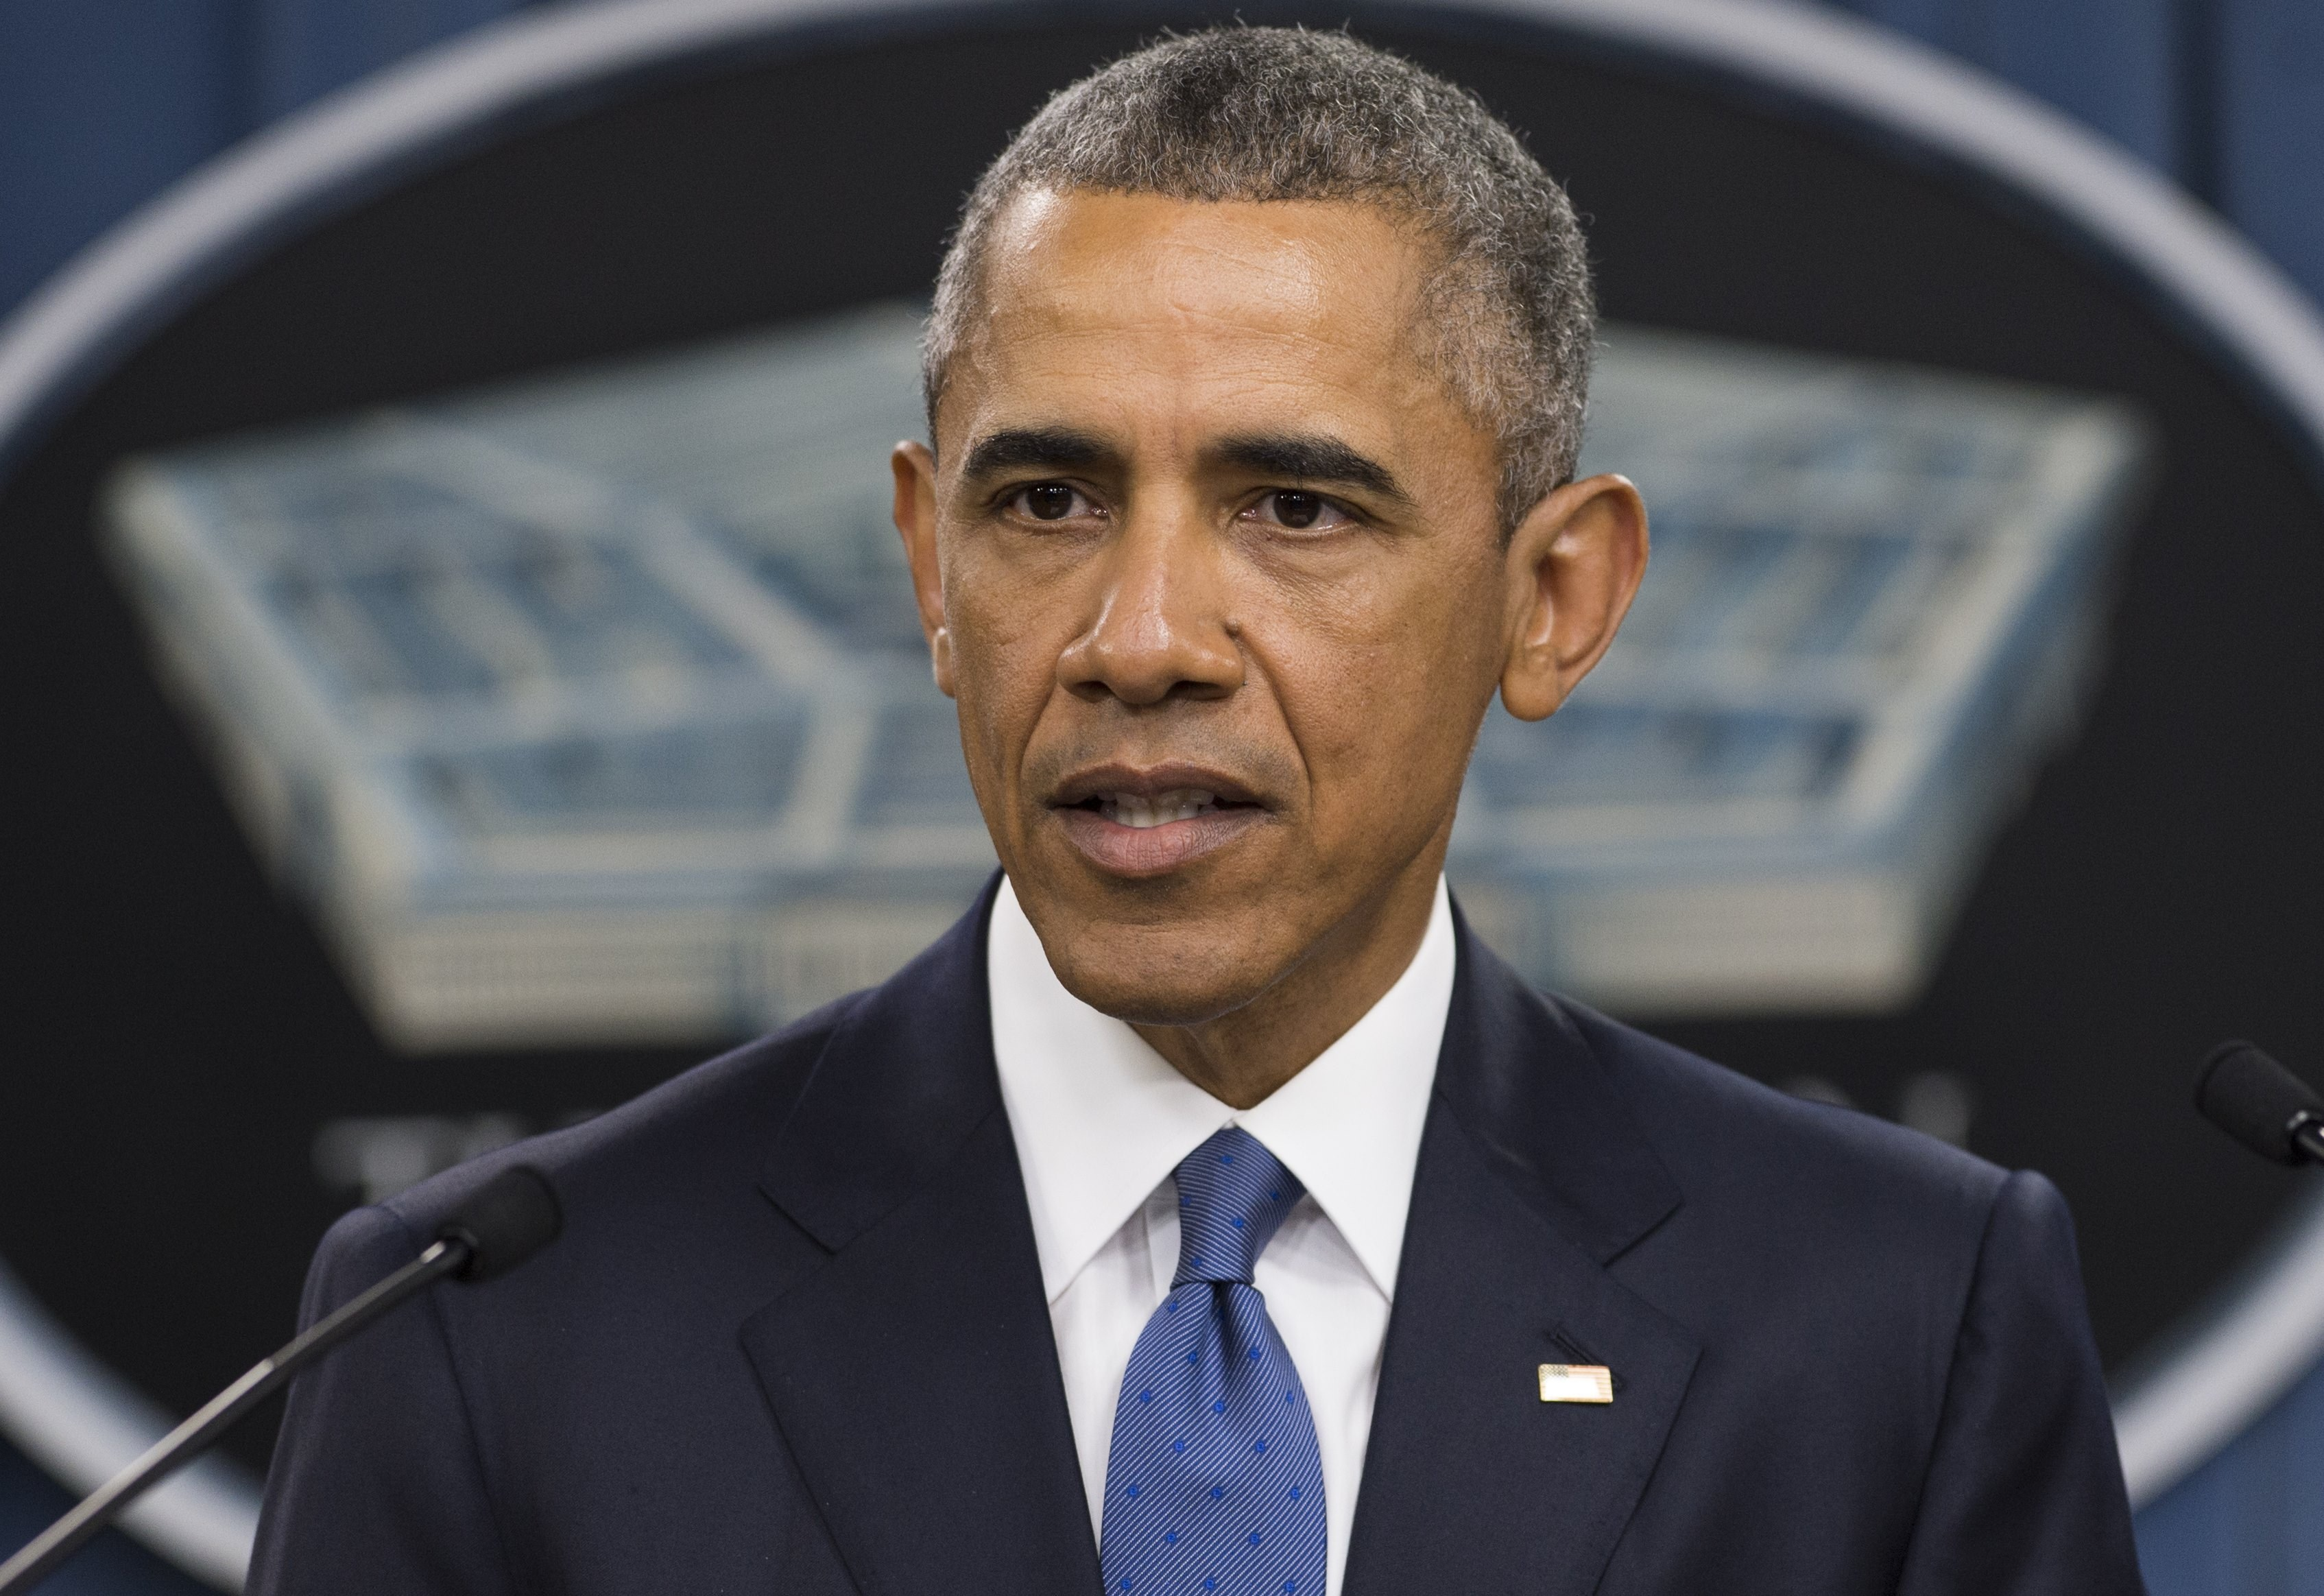 US President Barack Obama speaks following a meeting with top military officials about the military campaign against the Islamic State at the Pentagon in Washington, DC, July 6, 2015.